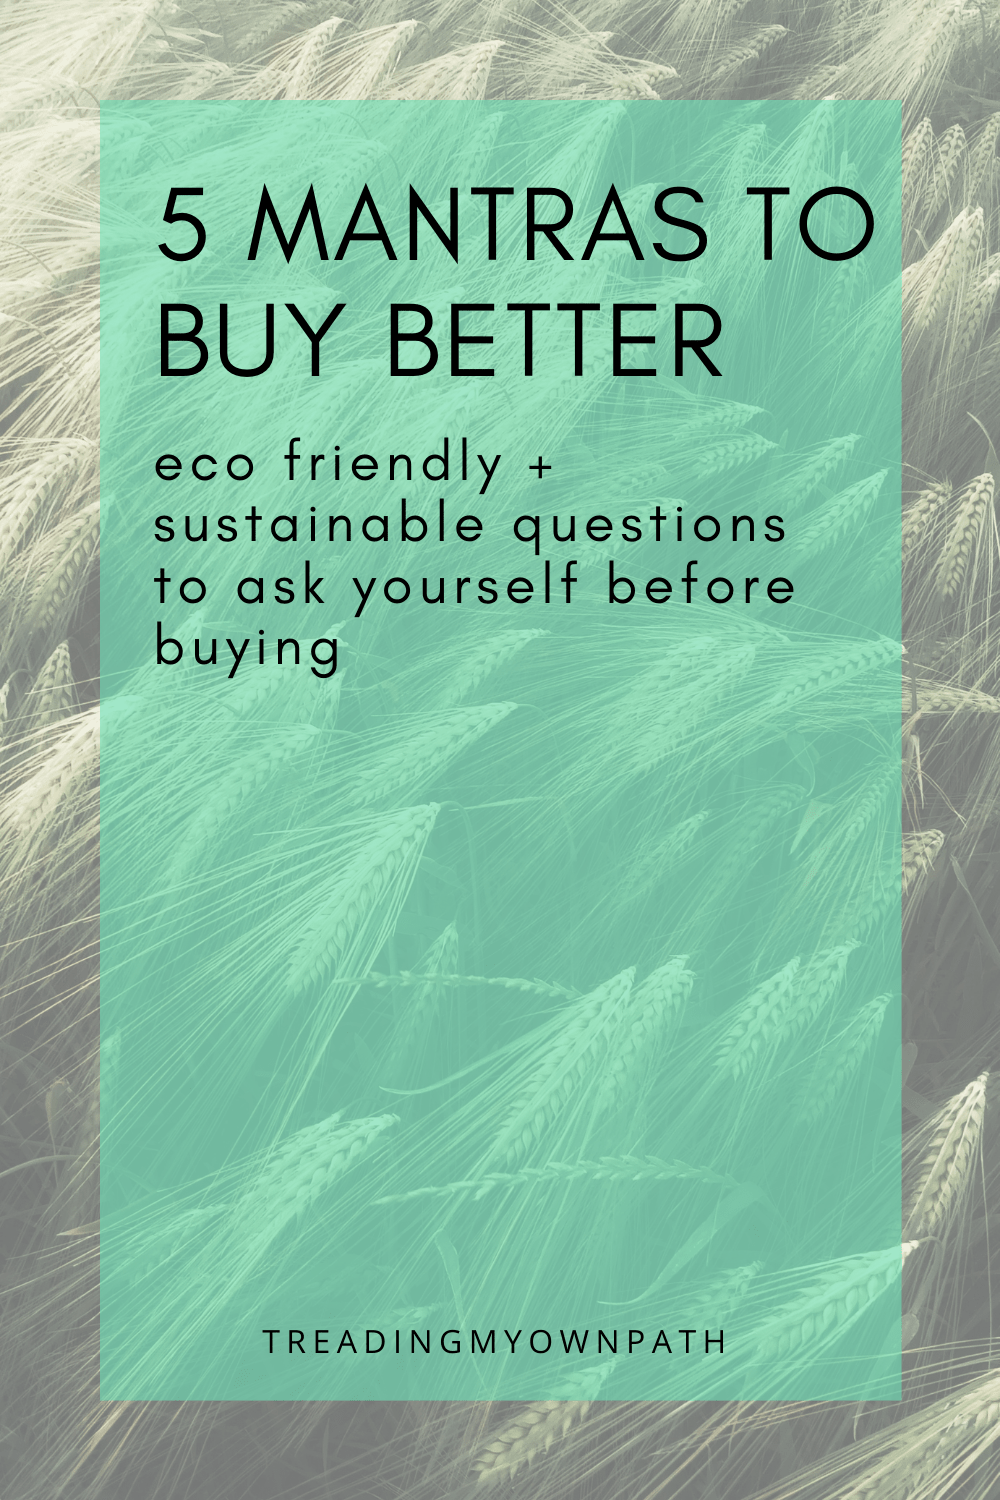 5 Mantras for Buying Better